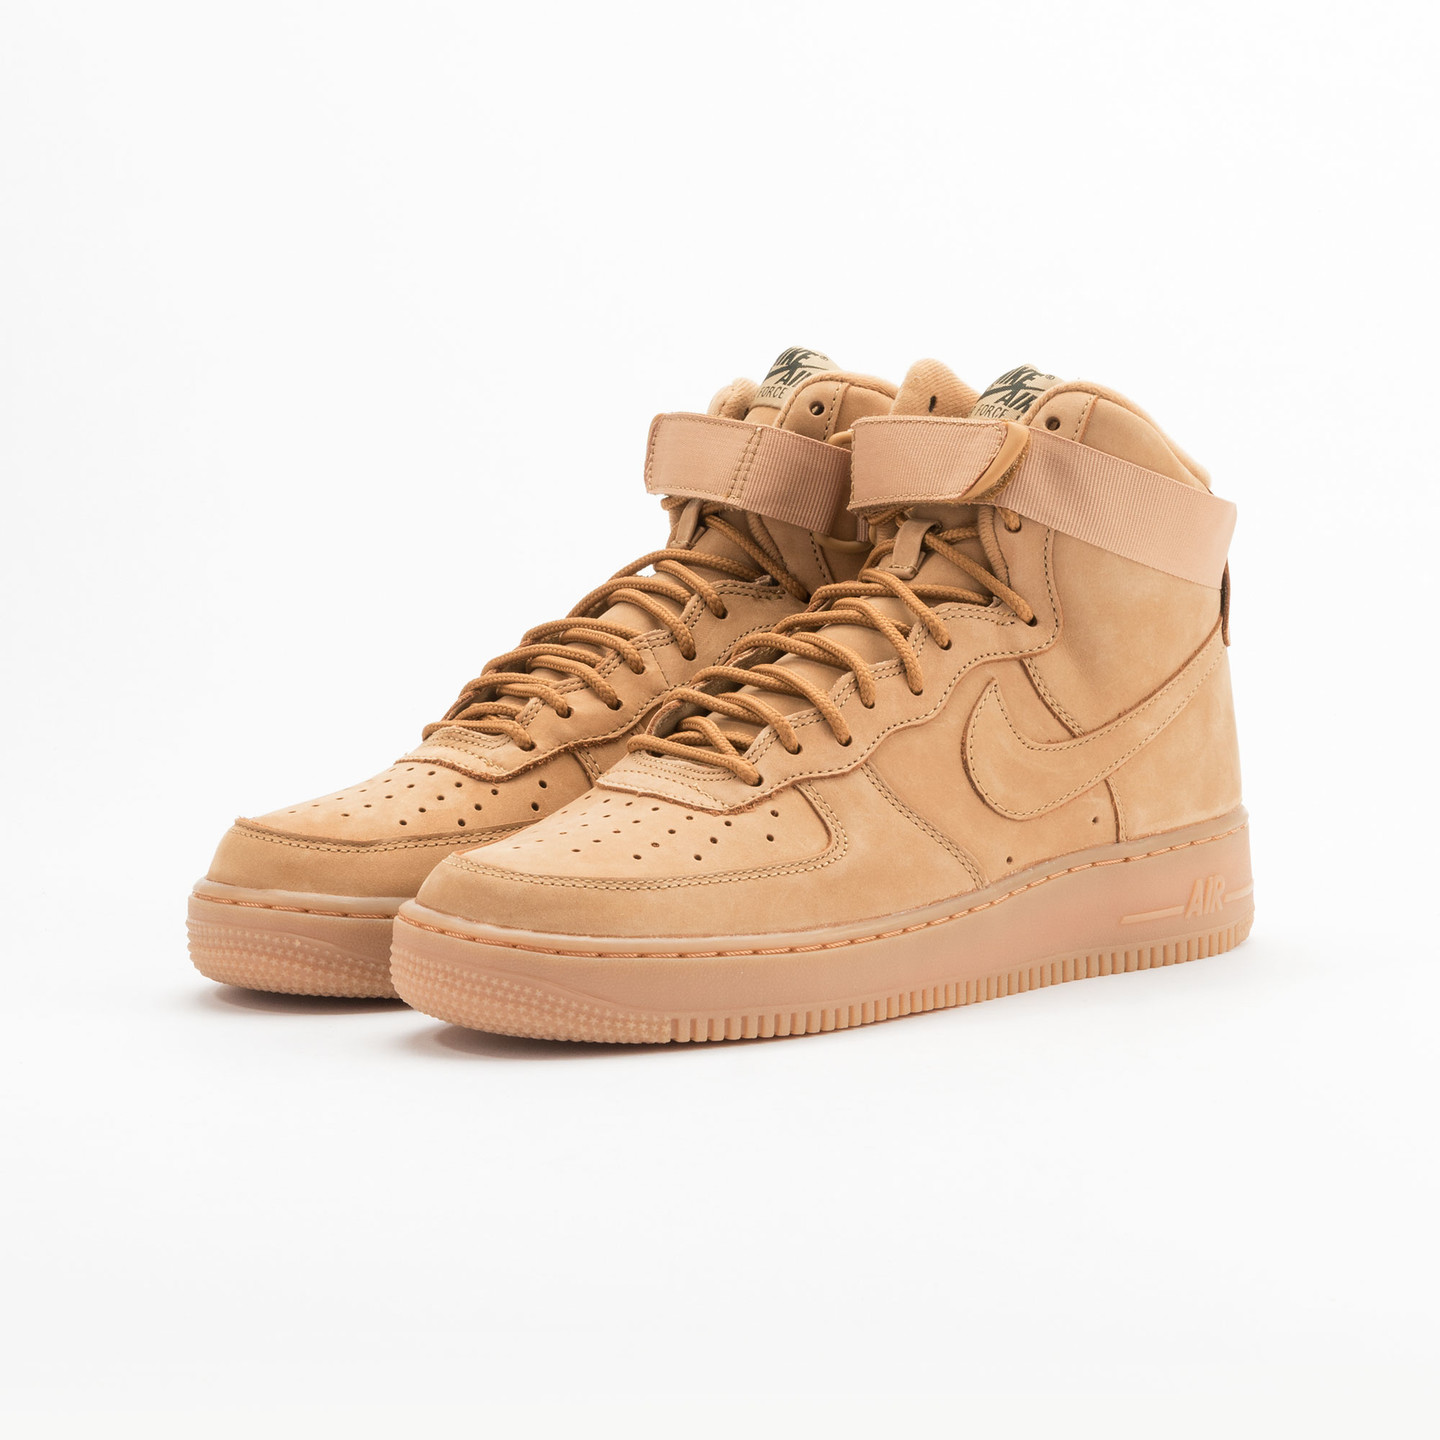 Nike Air Force 1 High ´07 LV8 Flax / Flax 806403-200-42